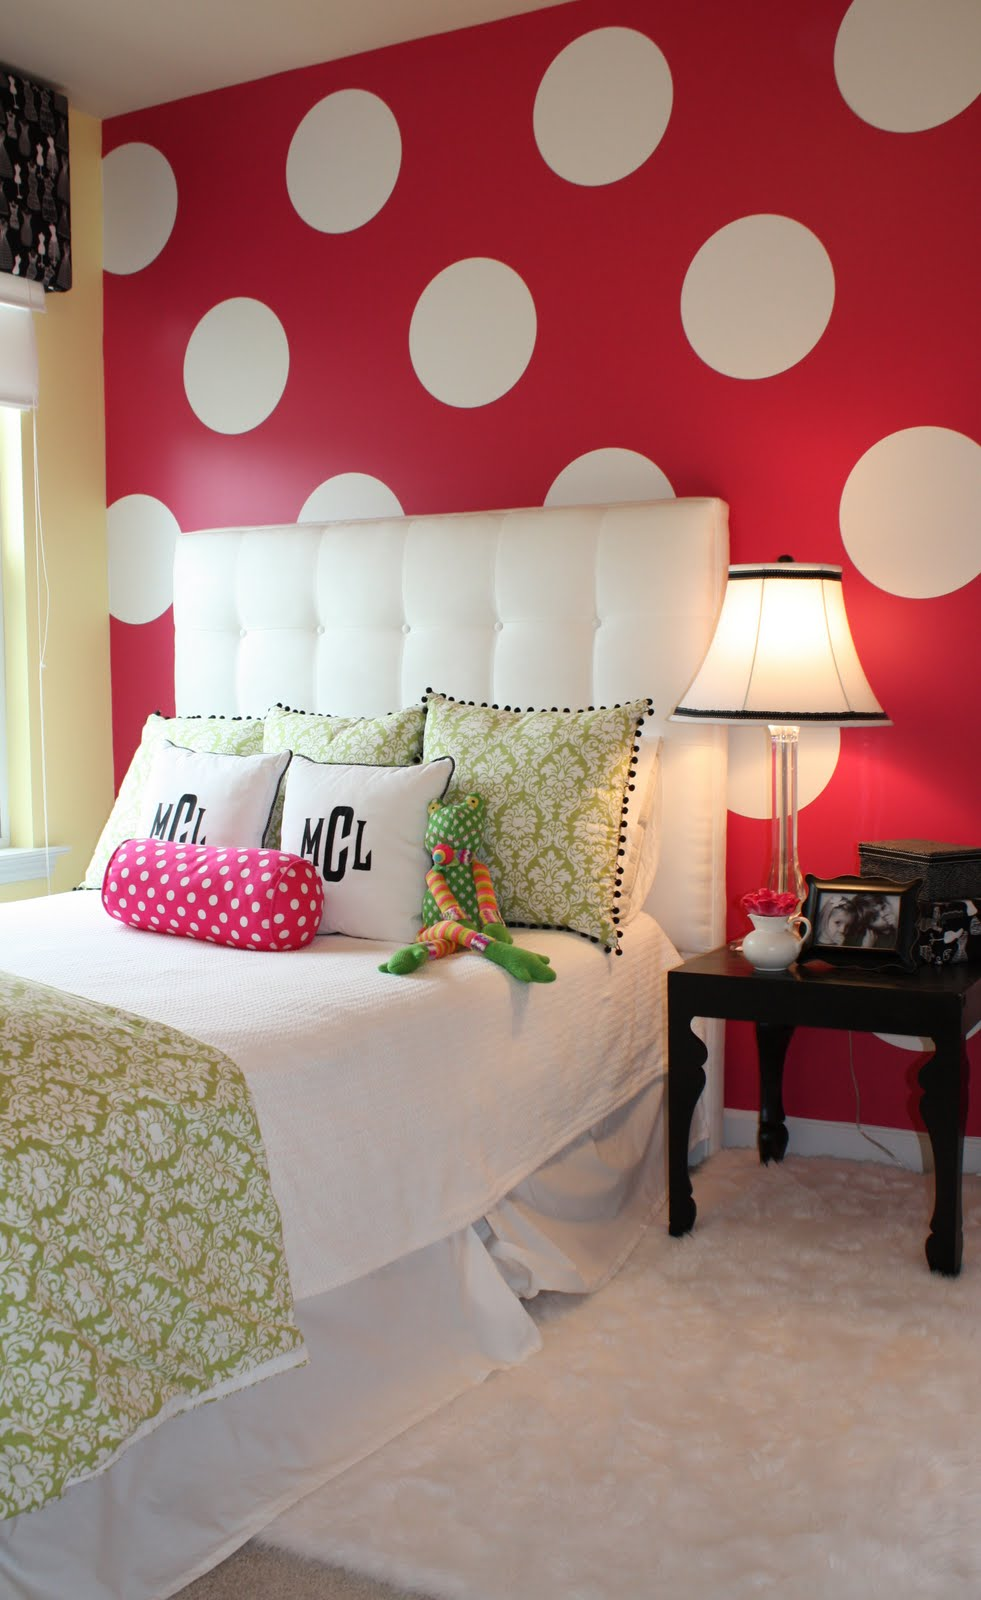 Ideas for shelby 39 s minnie mouse bedroom on pinterest minnie mouse polka dot walls and disney - Images of girls bedroom ...